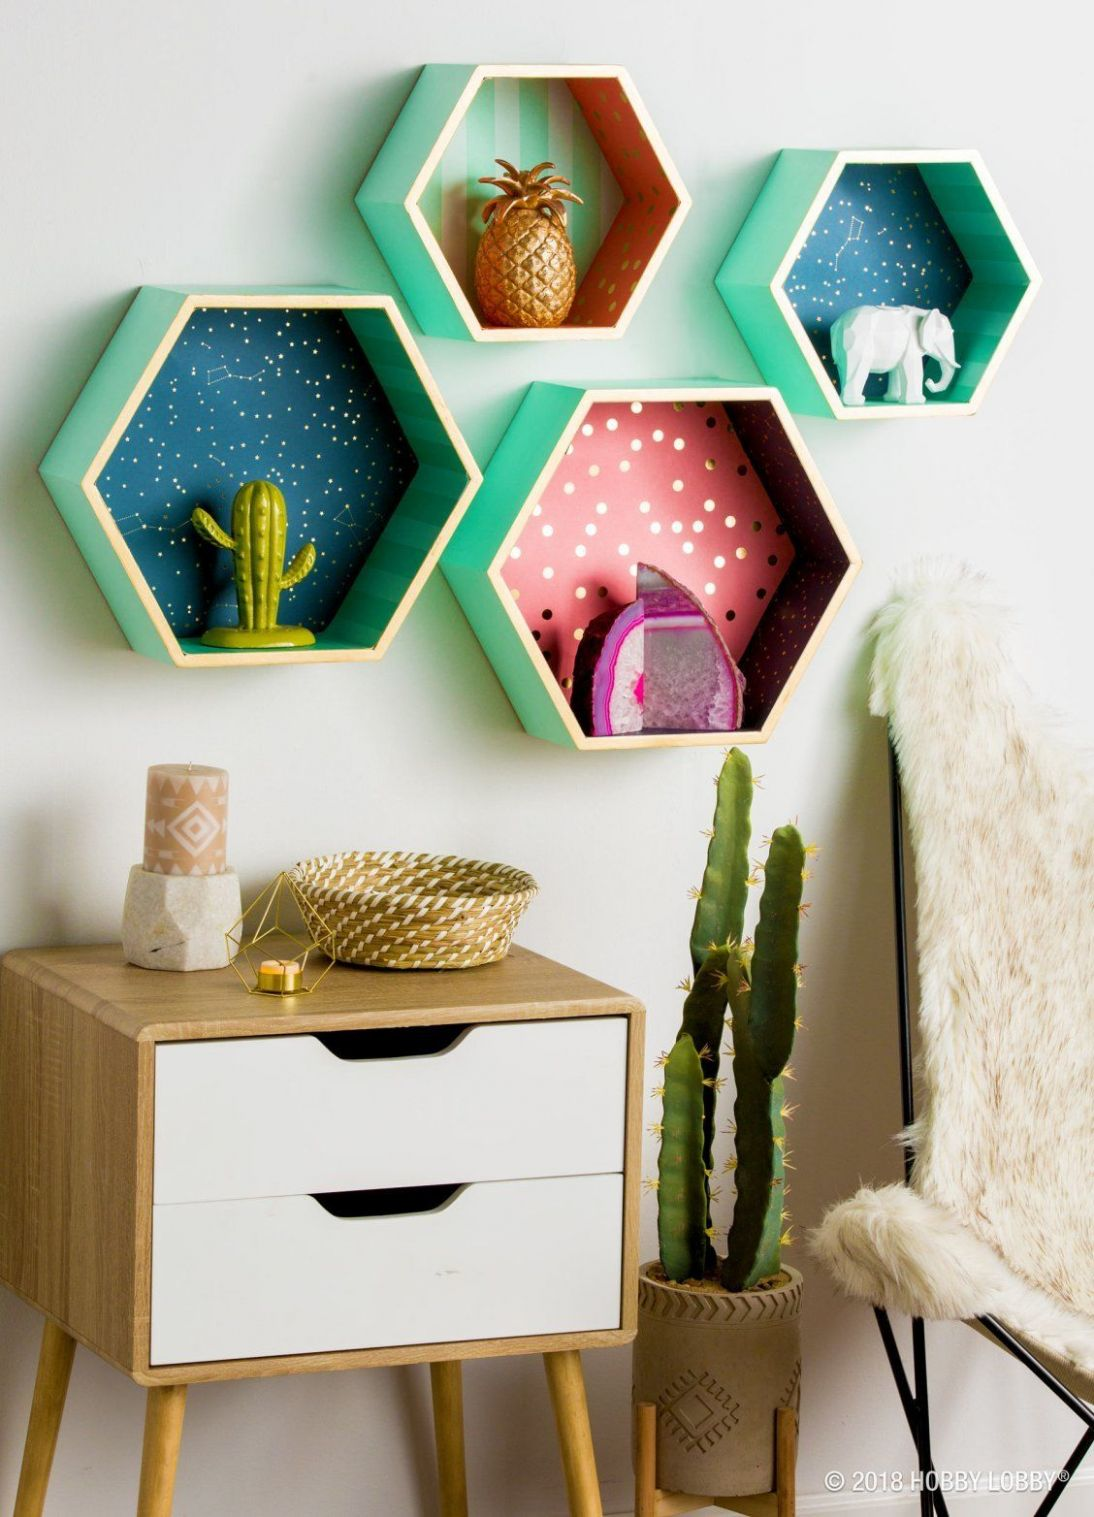 Make your shelves go from holding decor to being decor with poster ..